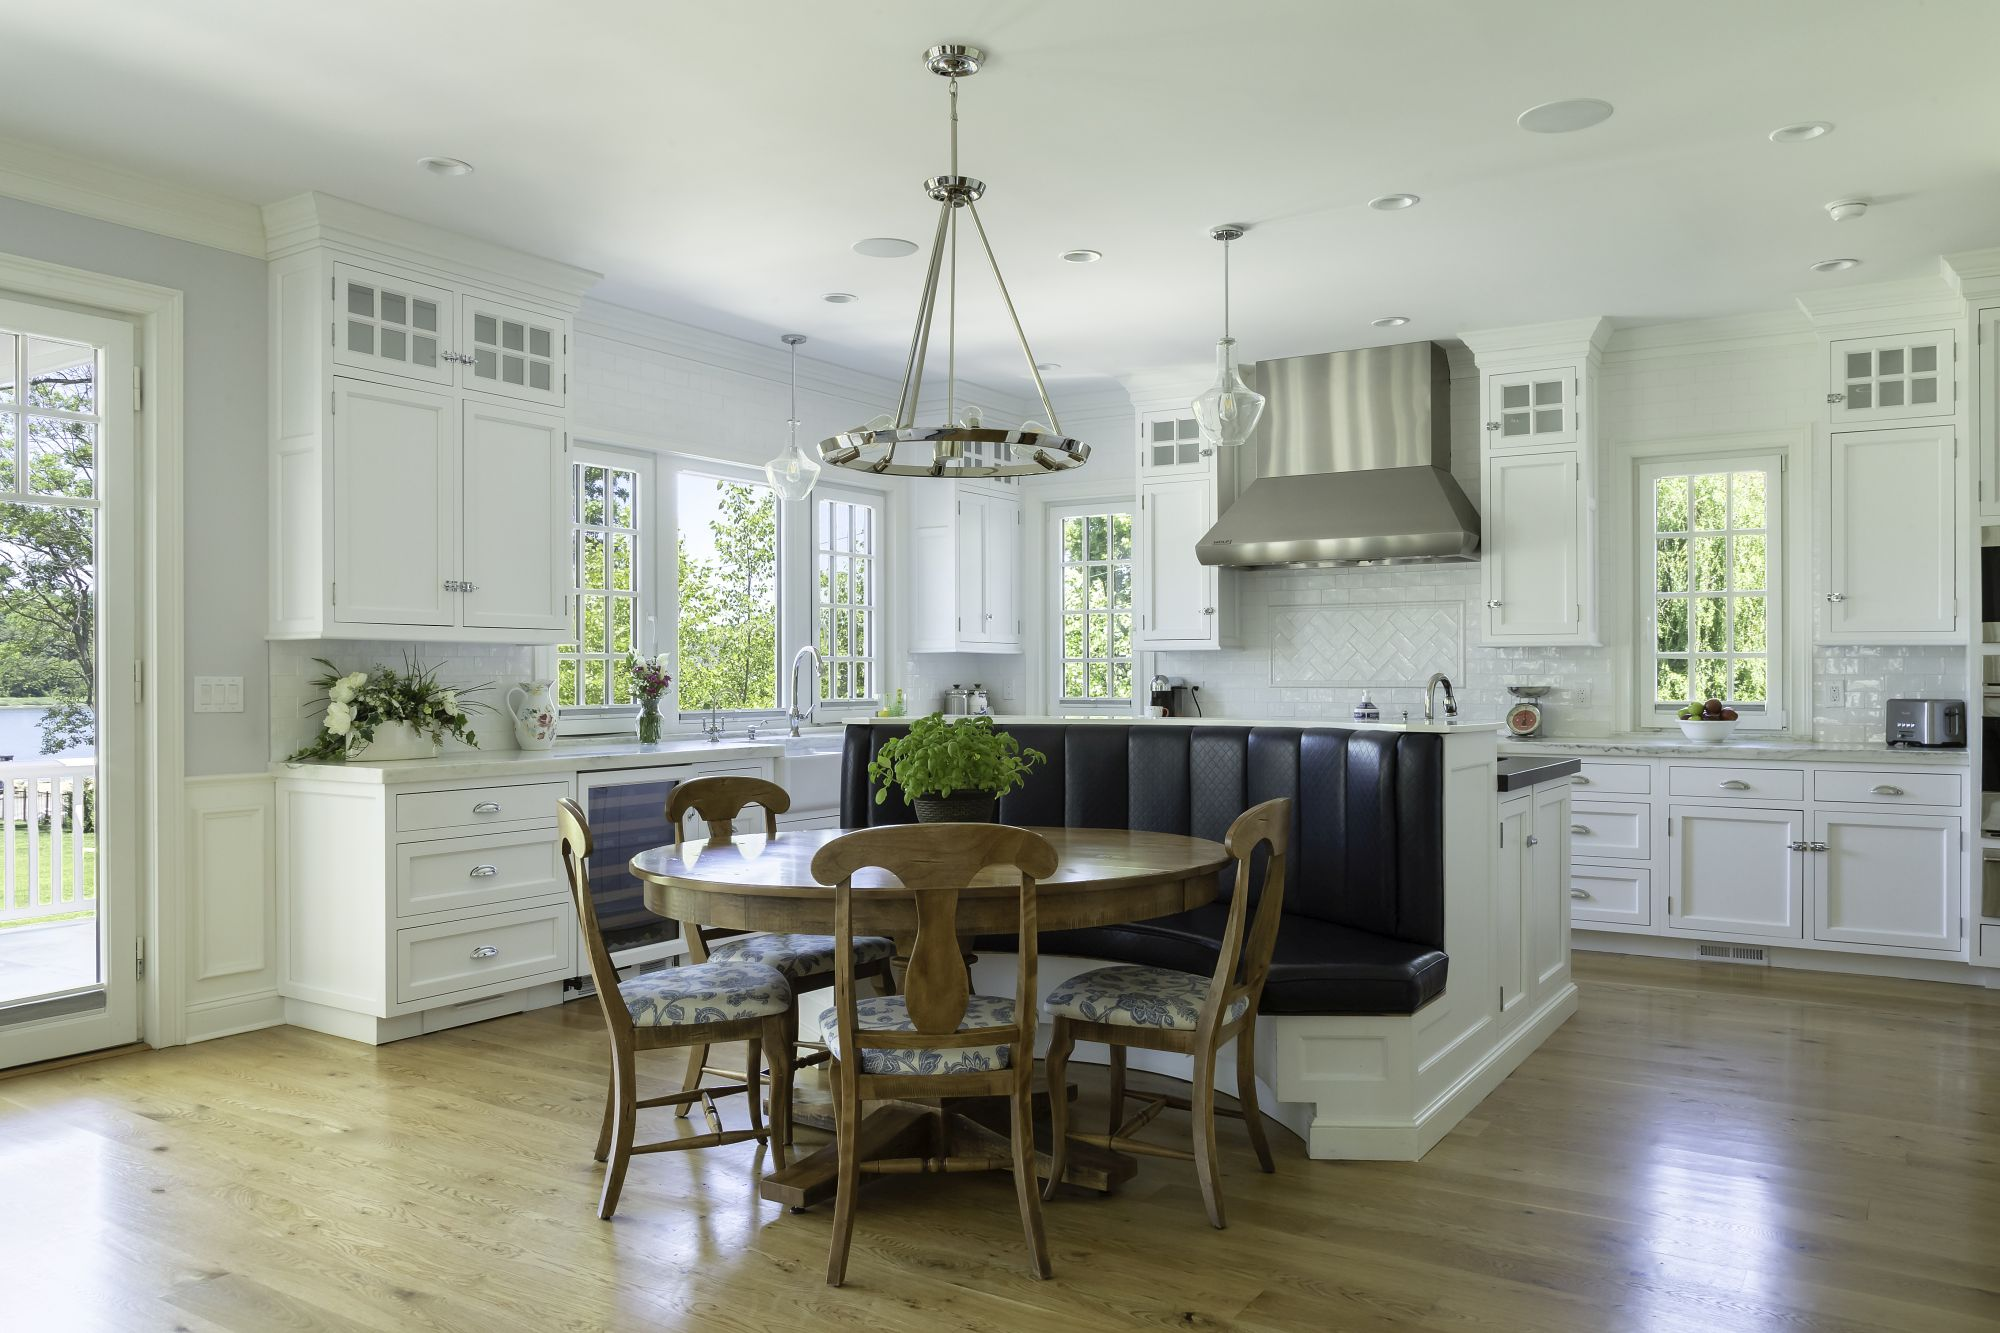 Transitional kitchen with large custom center island with banquette seating